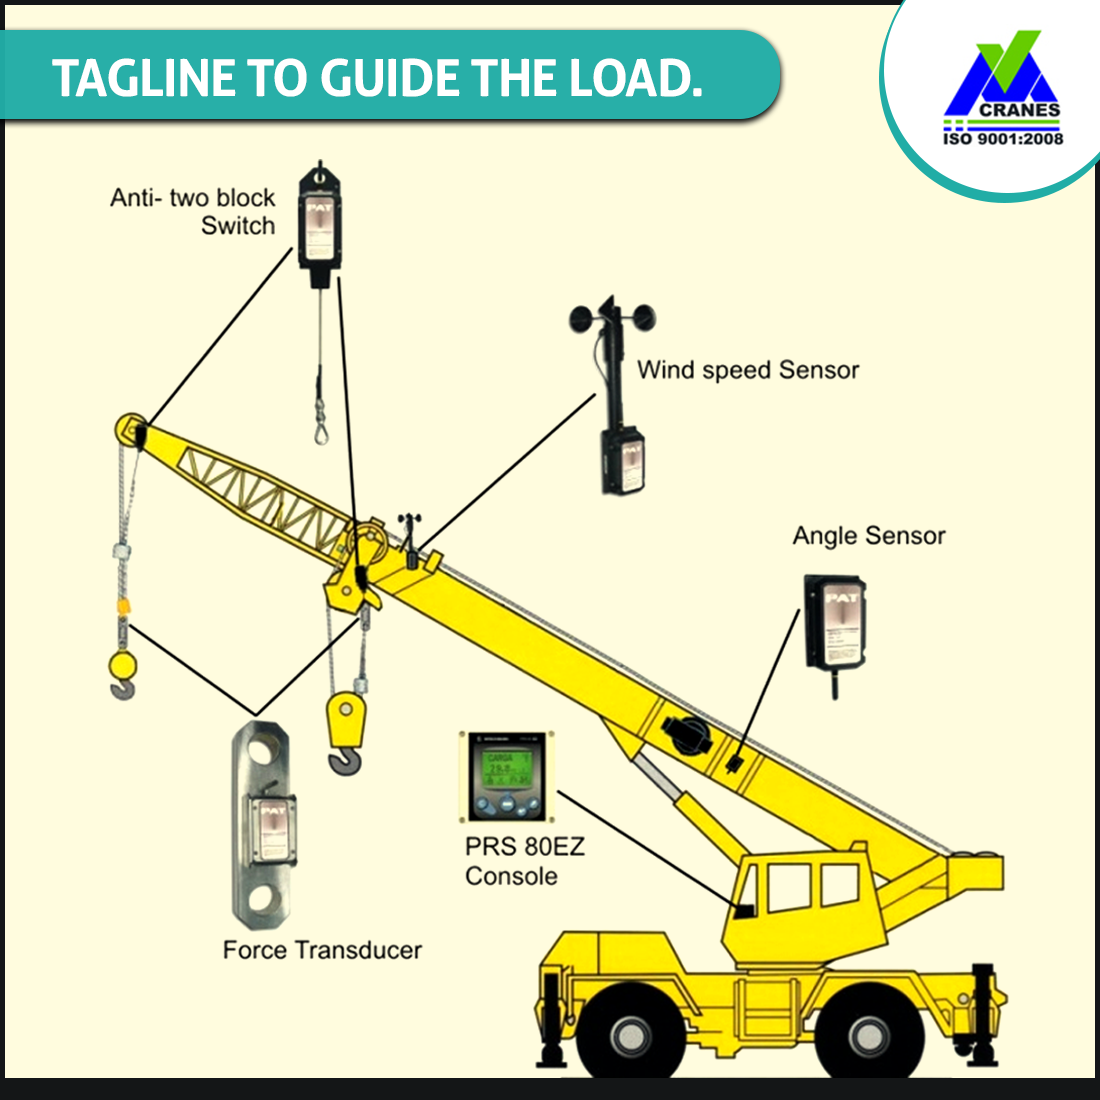 small resolution of usage of tagline to guide the load load to be handled smoothly cranessafety safetyguide motivation vmecranes vmengineers